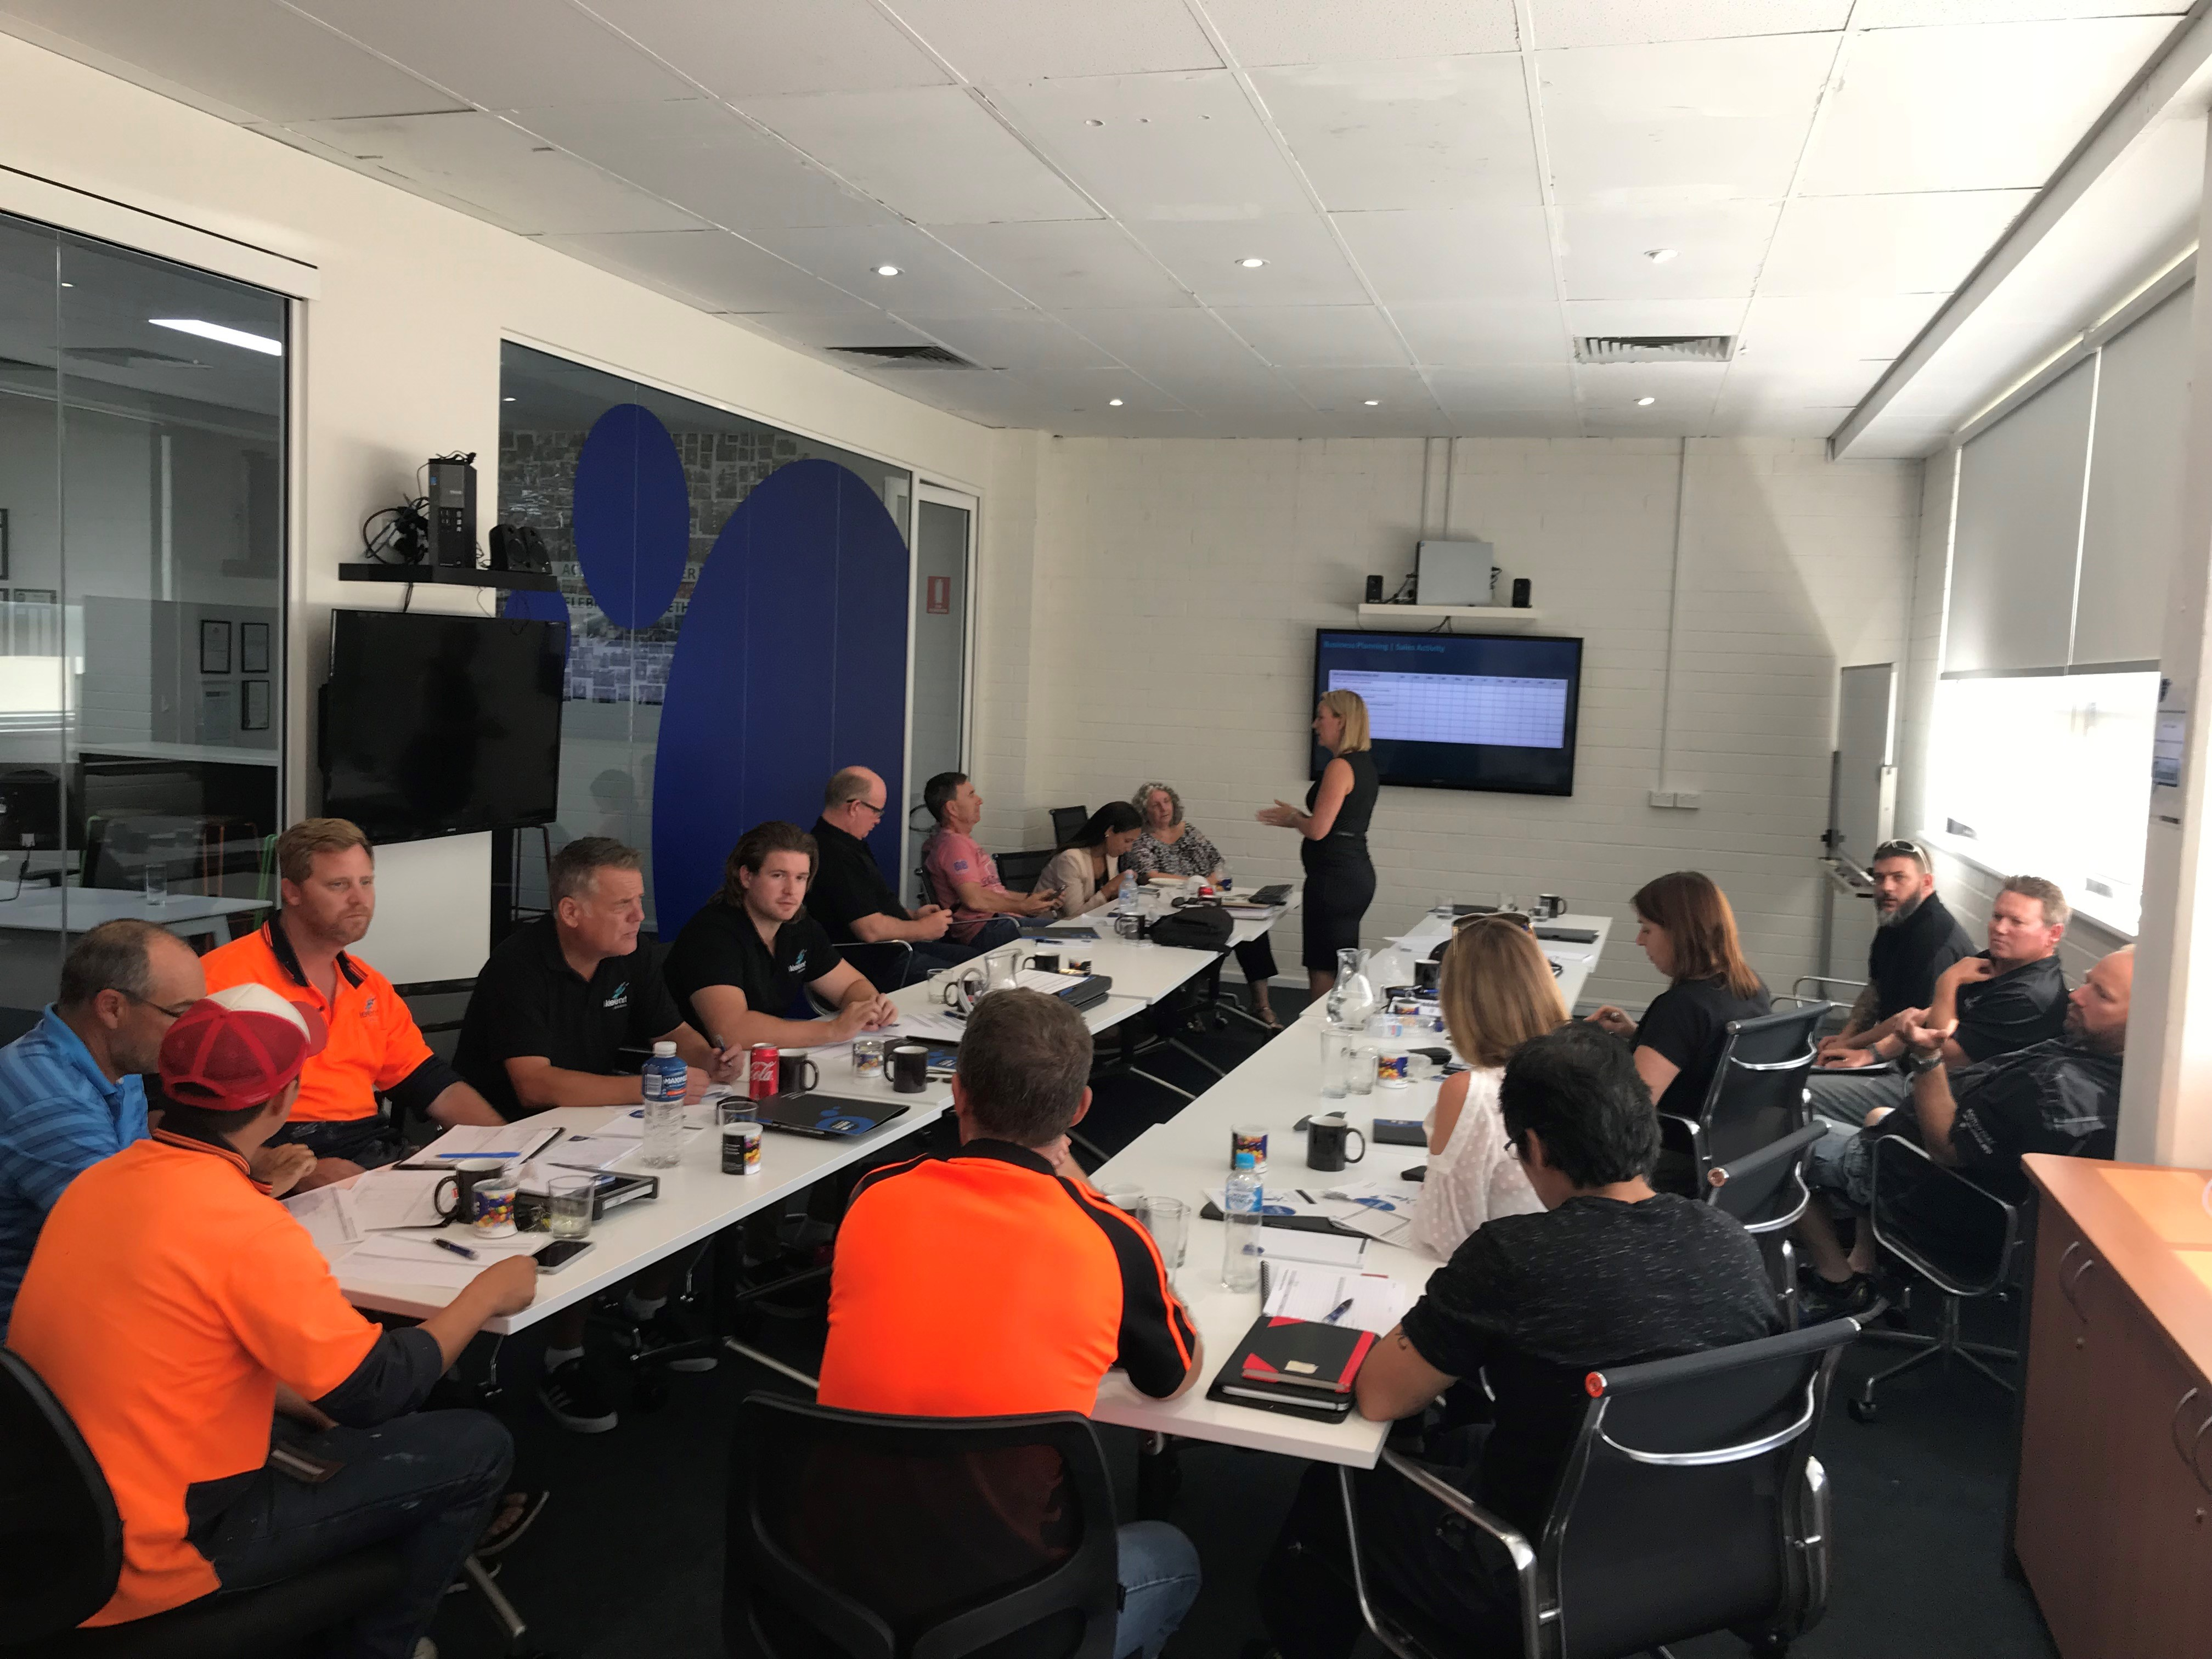 tradies-looking-to-become-a-business-owner-full-training-provided-9